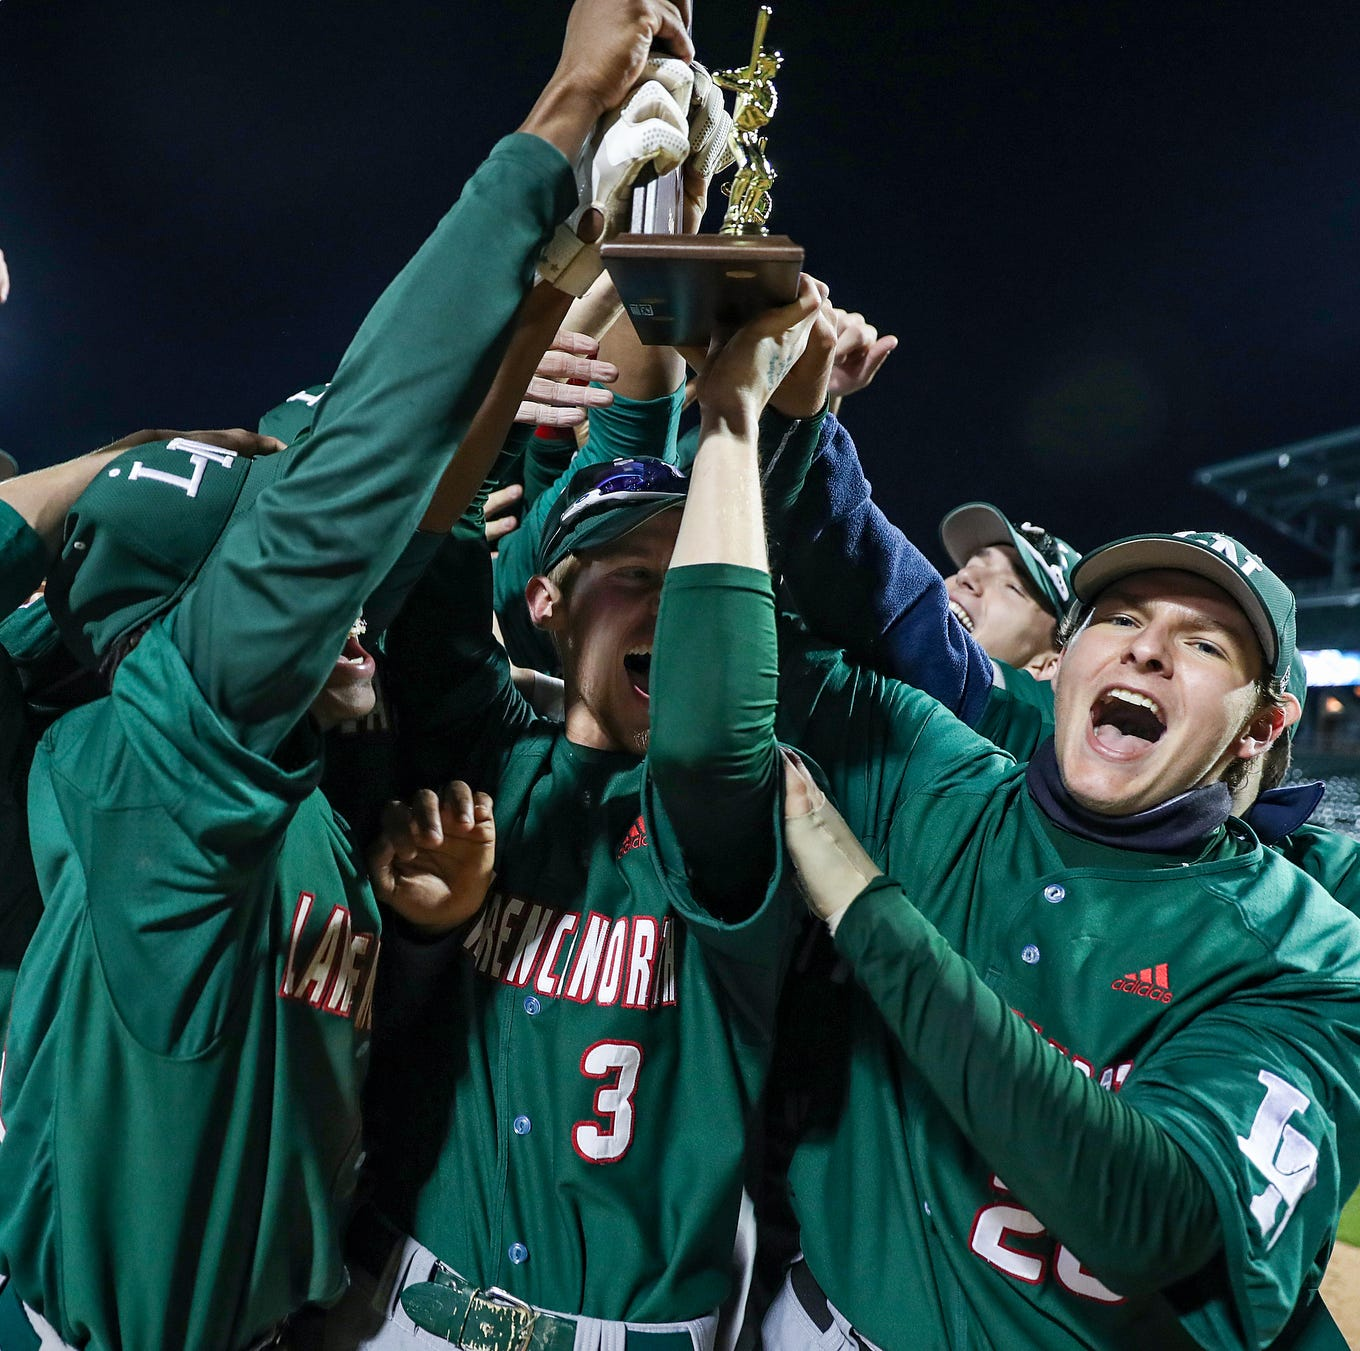 Lawrence North wins first Marion County baseball title since 1995